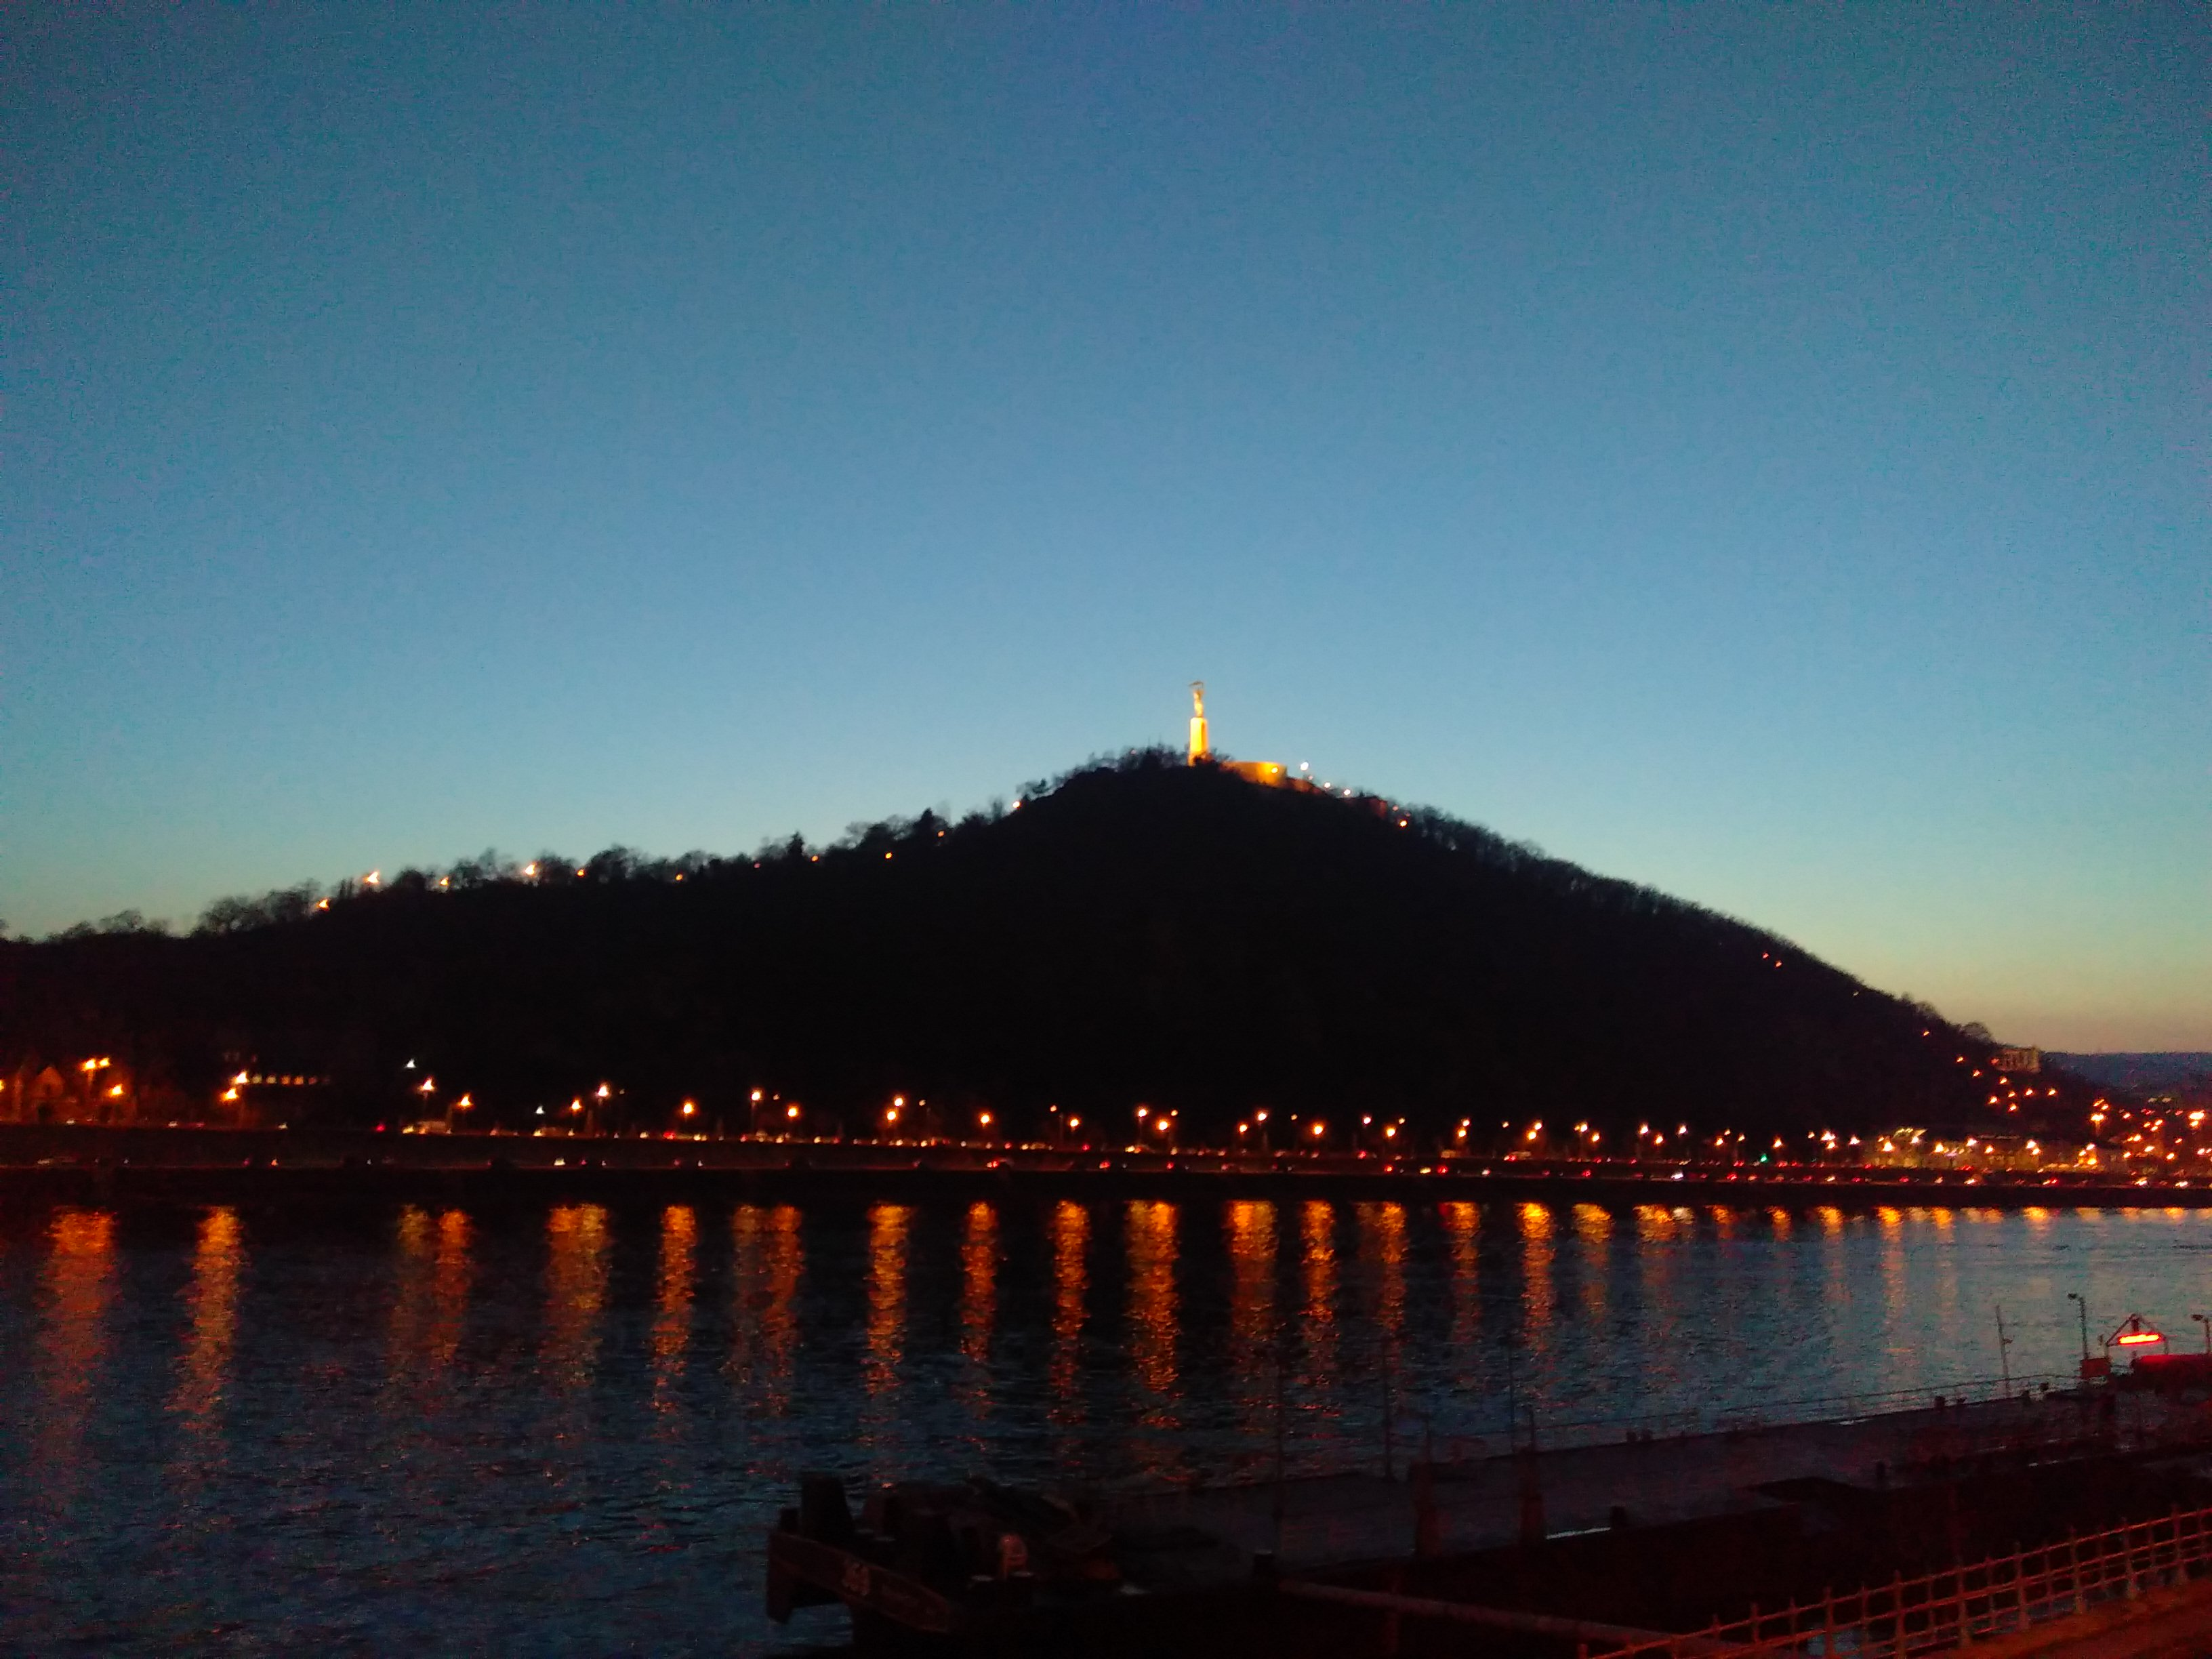 A dark hill on the far side of a dark blue river, with orange lights reflecting and a white tower on top of the hill